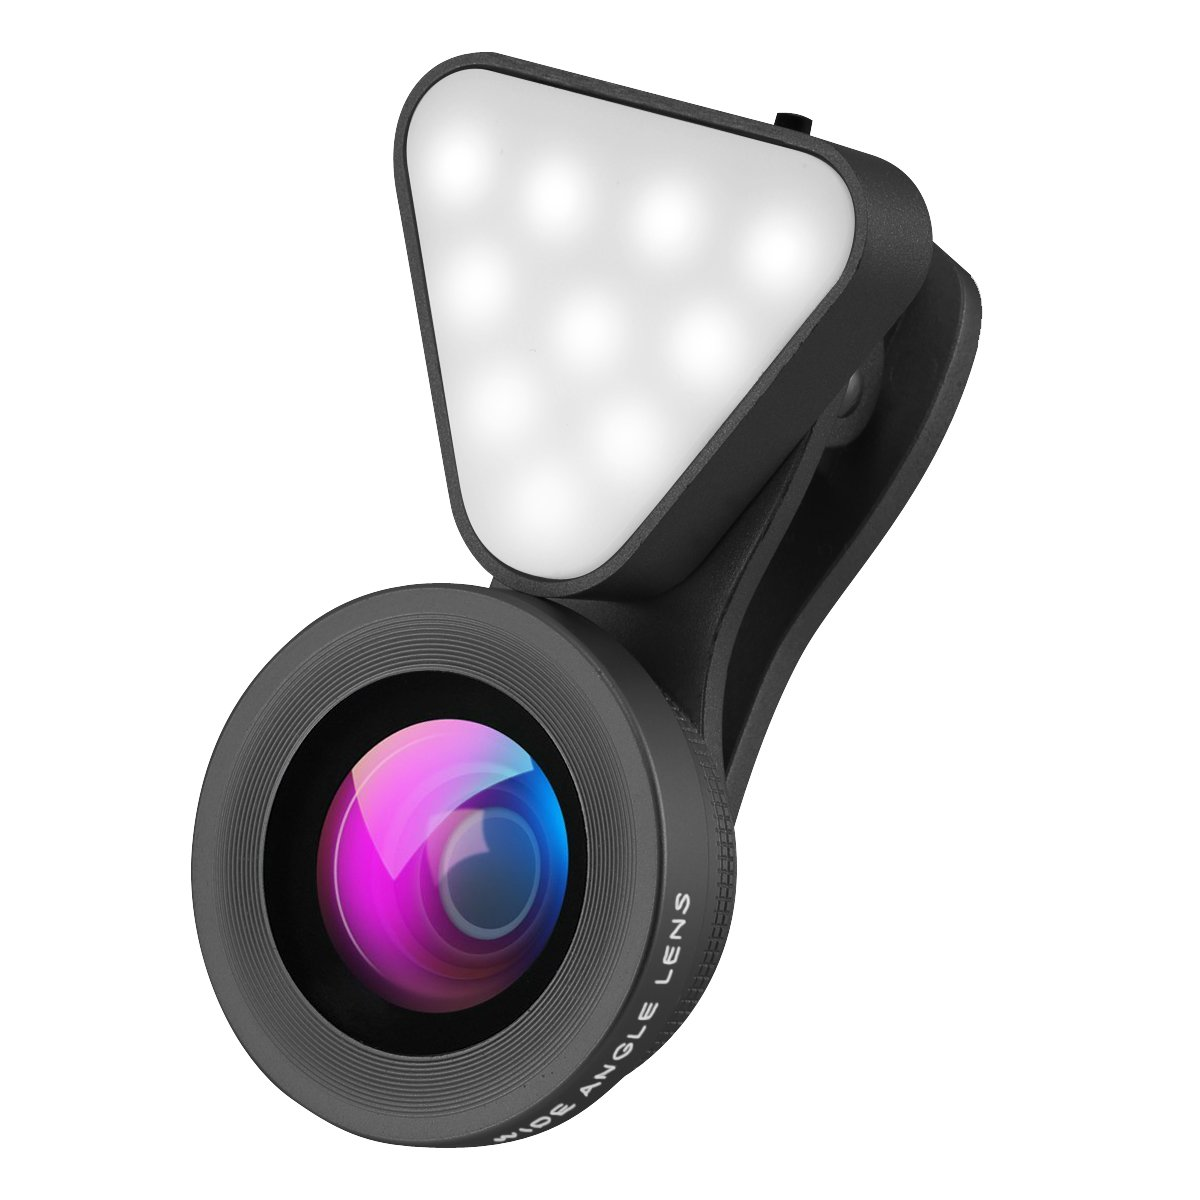 Wallfire 3 in 1 Cell Phone Lens with 3 Adjustable Brightness Fill Light 15X Macro 0.4X 0.6X Wide Angle Lens HD camera lens for iPhone 7 7 Plus 6s 6s Plus 6 5 Samsung Most Smartphones